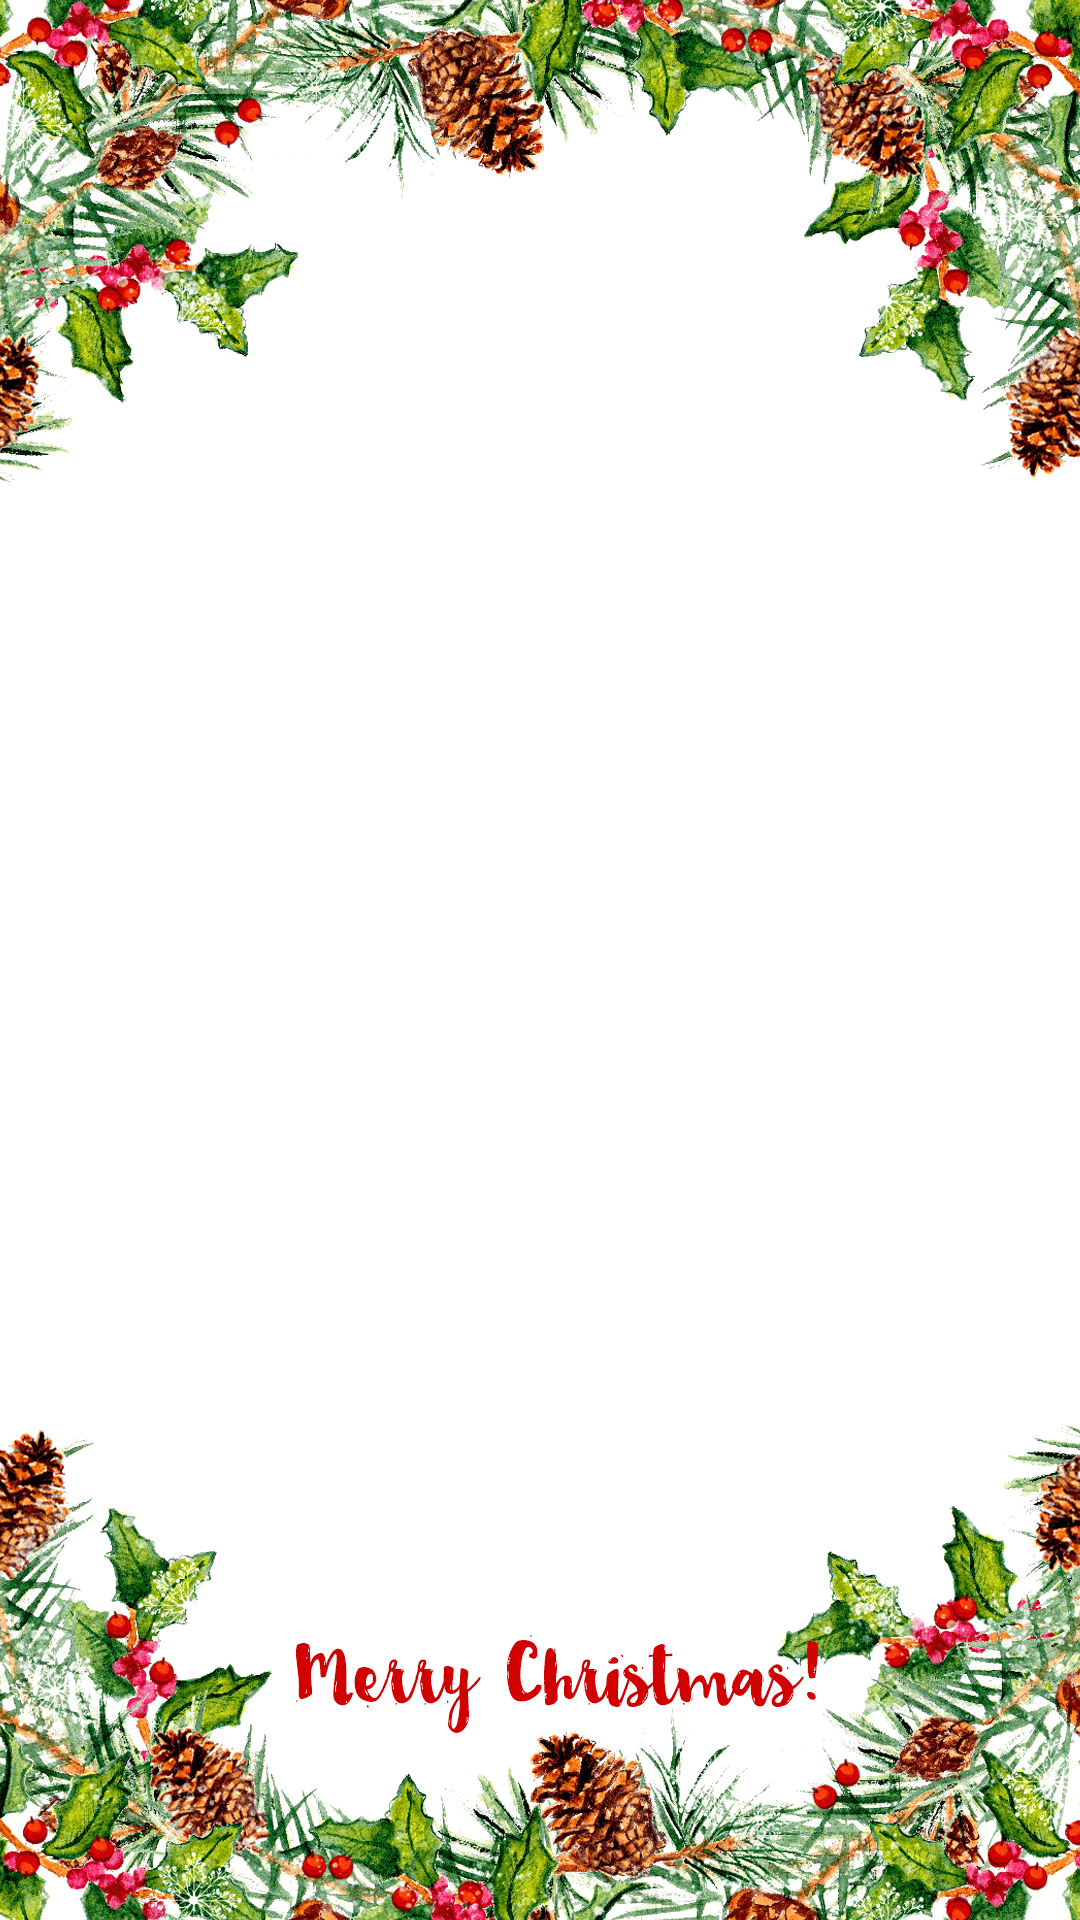 Watercolor Wreath Christmas Snapchat Filter Geofilter